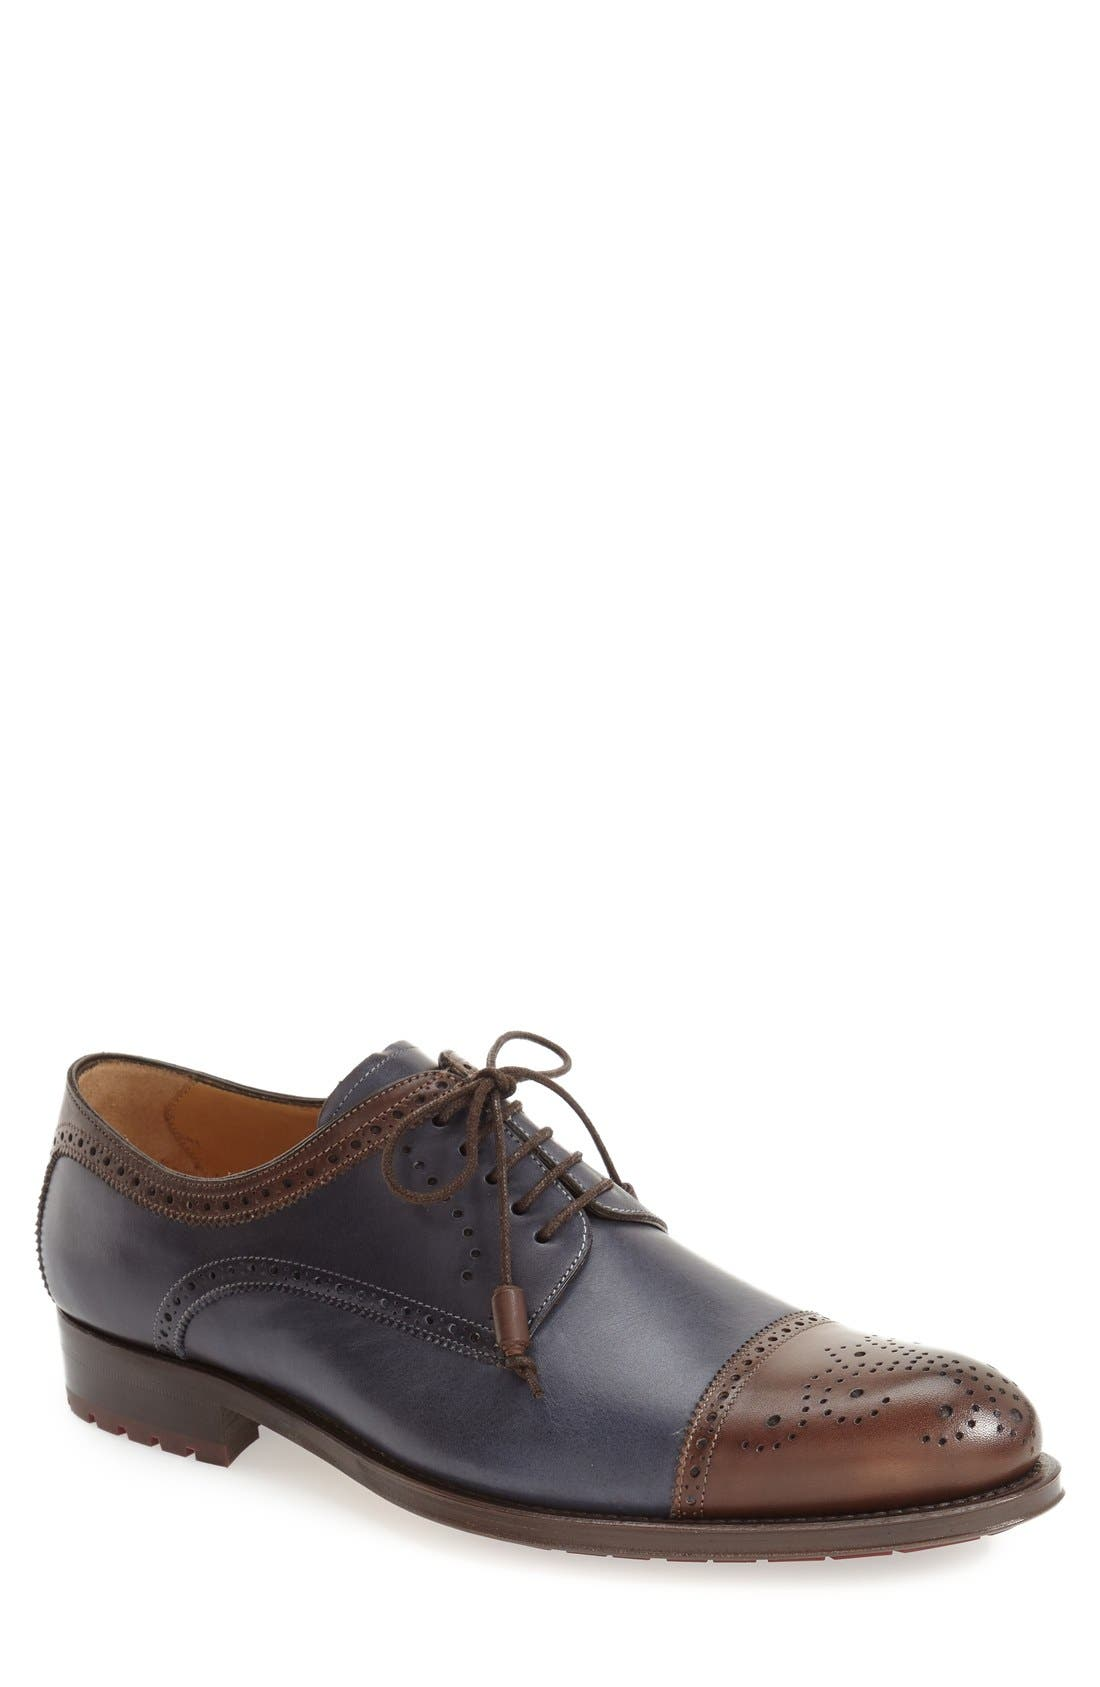 Main Image - Mezlan 'Carlino' Cap Toe Oxford (Men)